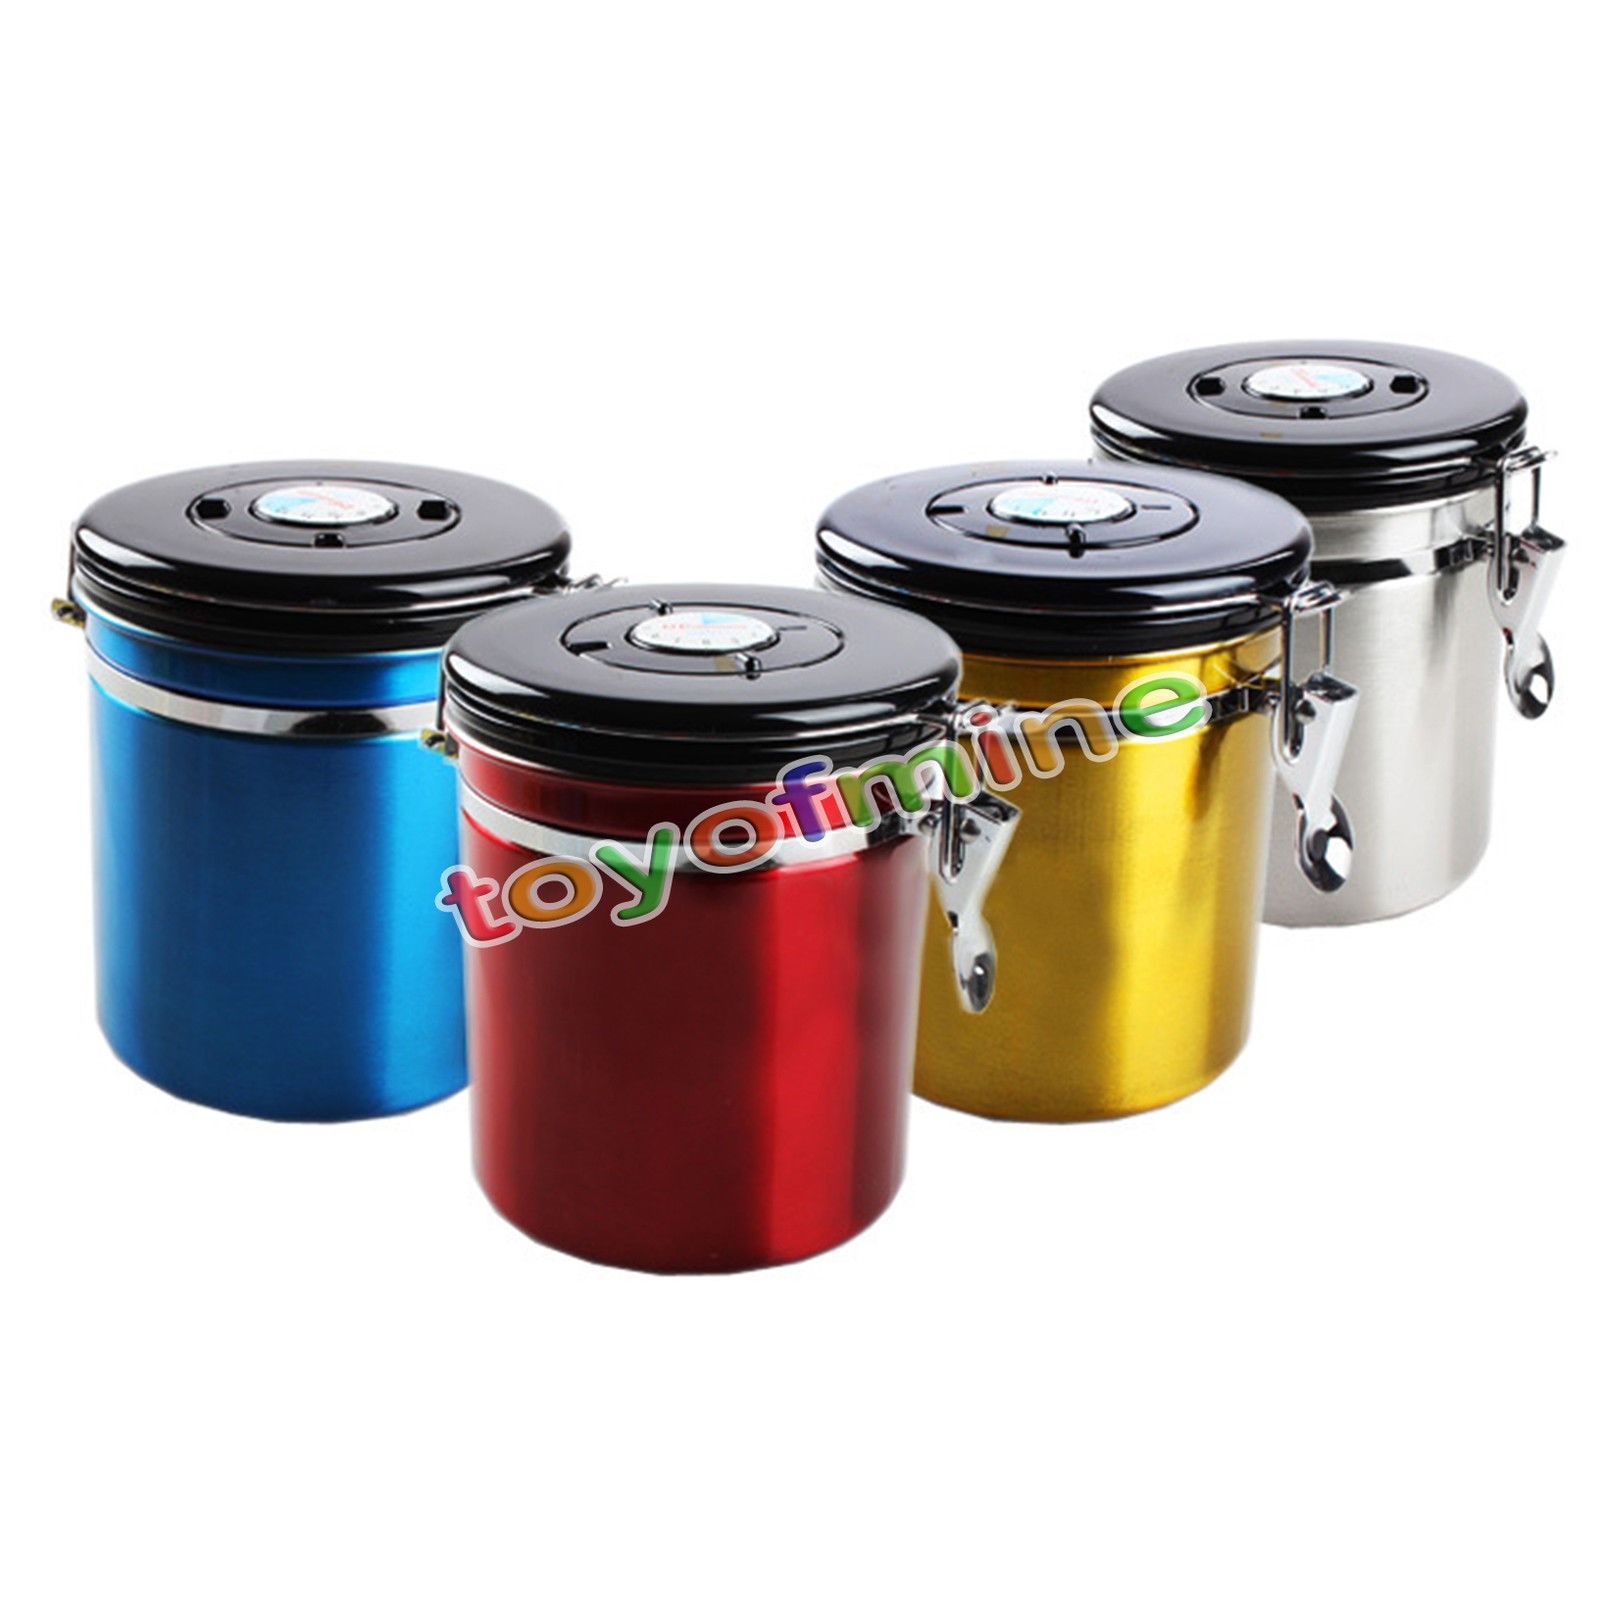 popular tea coffee sugar containers buy cheap tea coffee sugar kitchen container boxes 4 color metal storage food bottles sugar tea coffee beans canisters snack cans